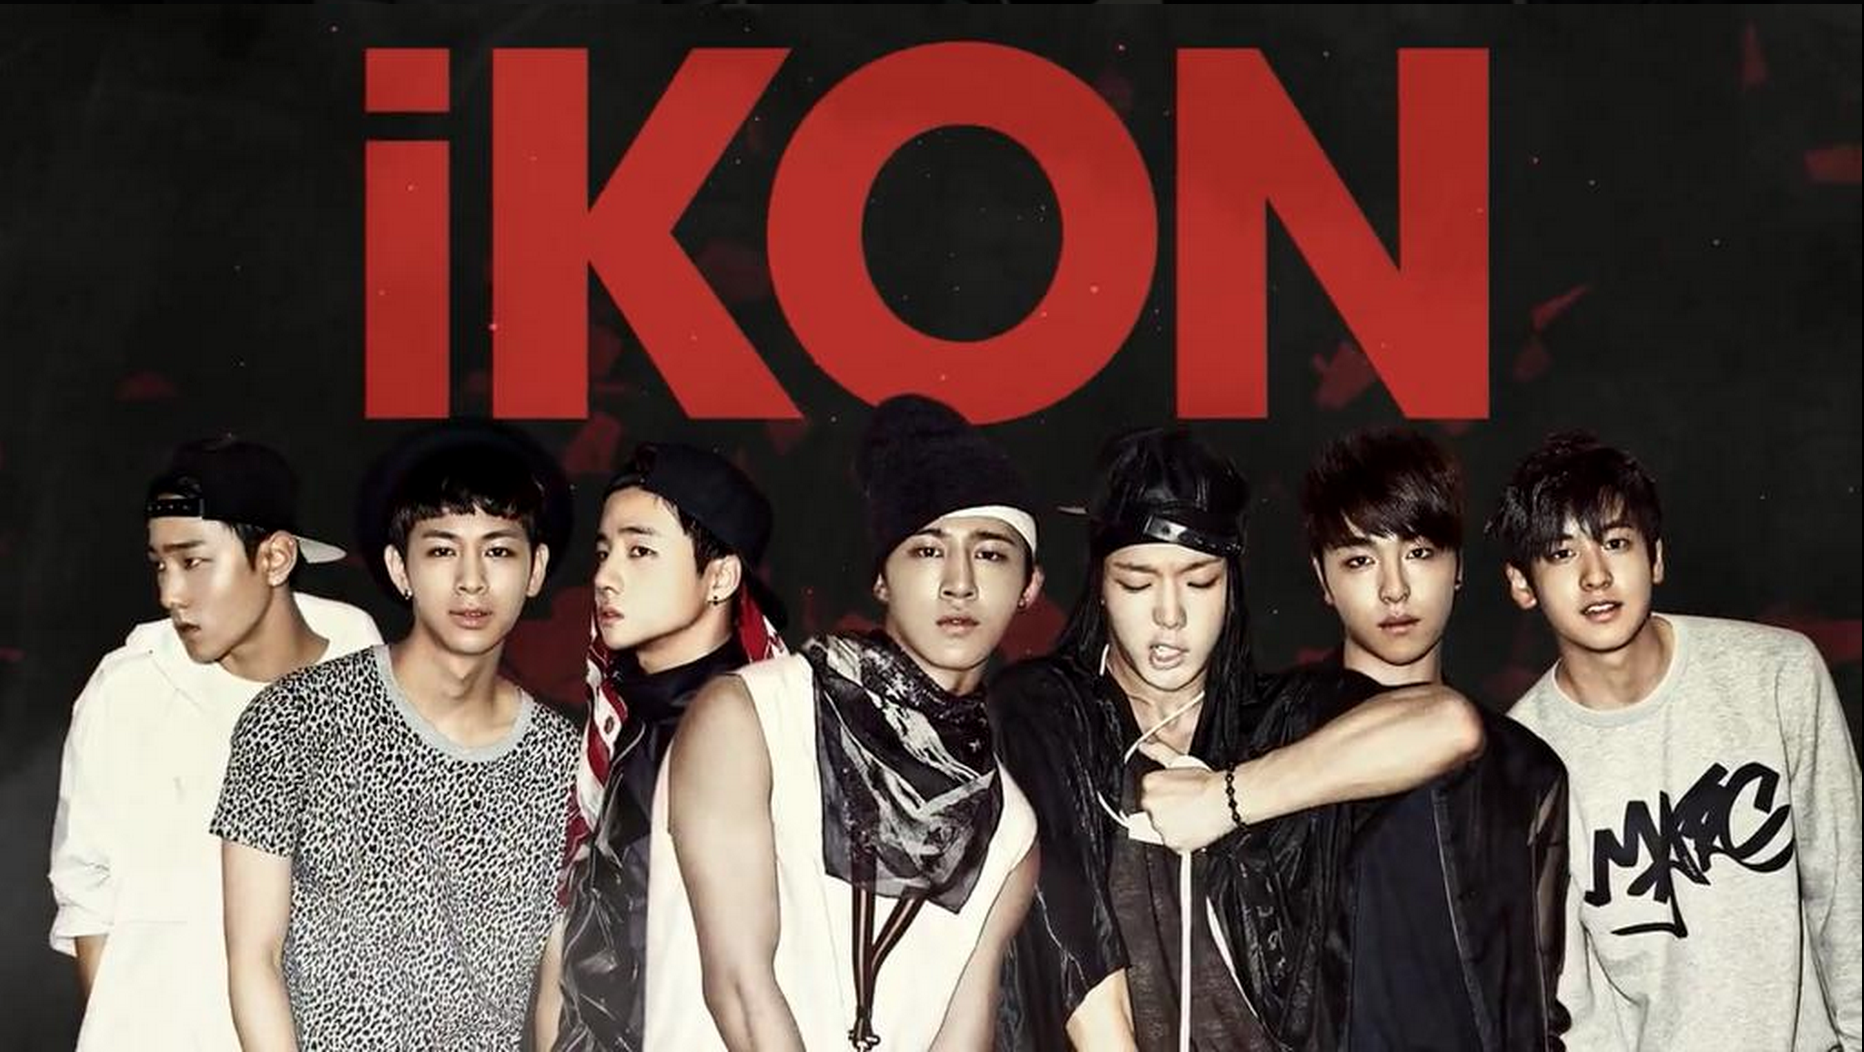 B.I. Leader of K-band iKON Quits Band after Drug Use Accusations: Fans File Change Petition